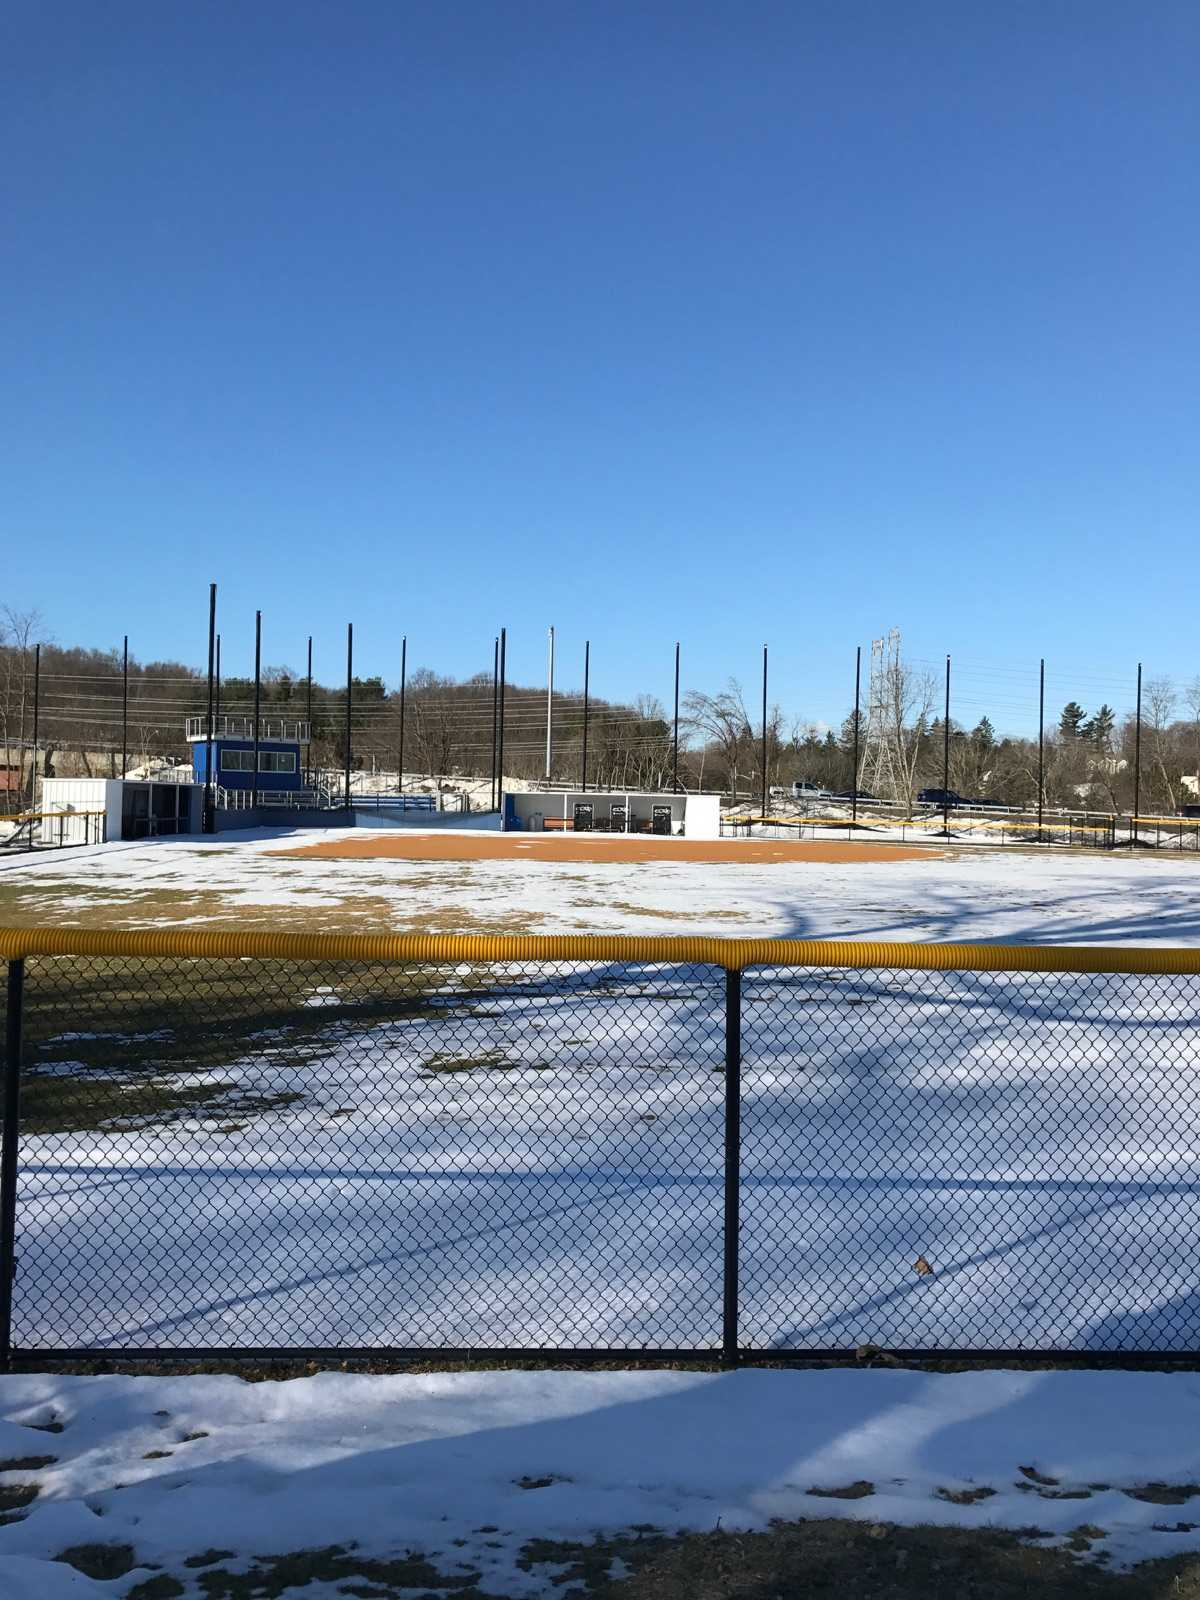 The softball field, which was recommended for an adjustment in netting due to a ball hitting a car on the Taconic State Parkway. Photo by Joseph Tucci.